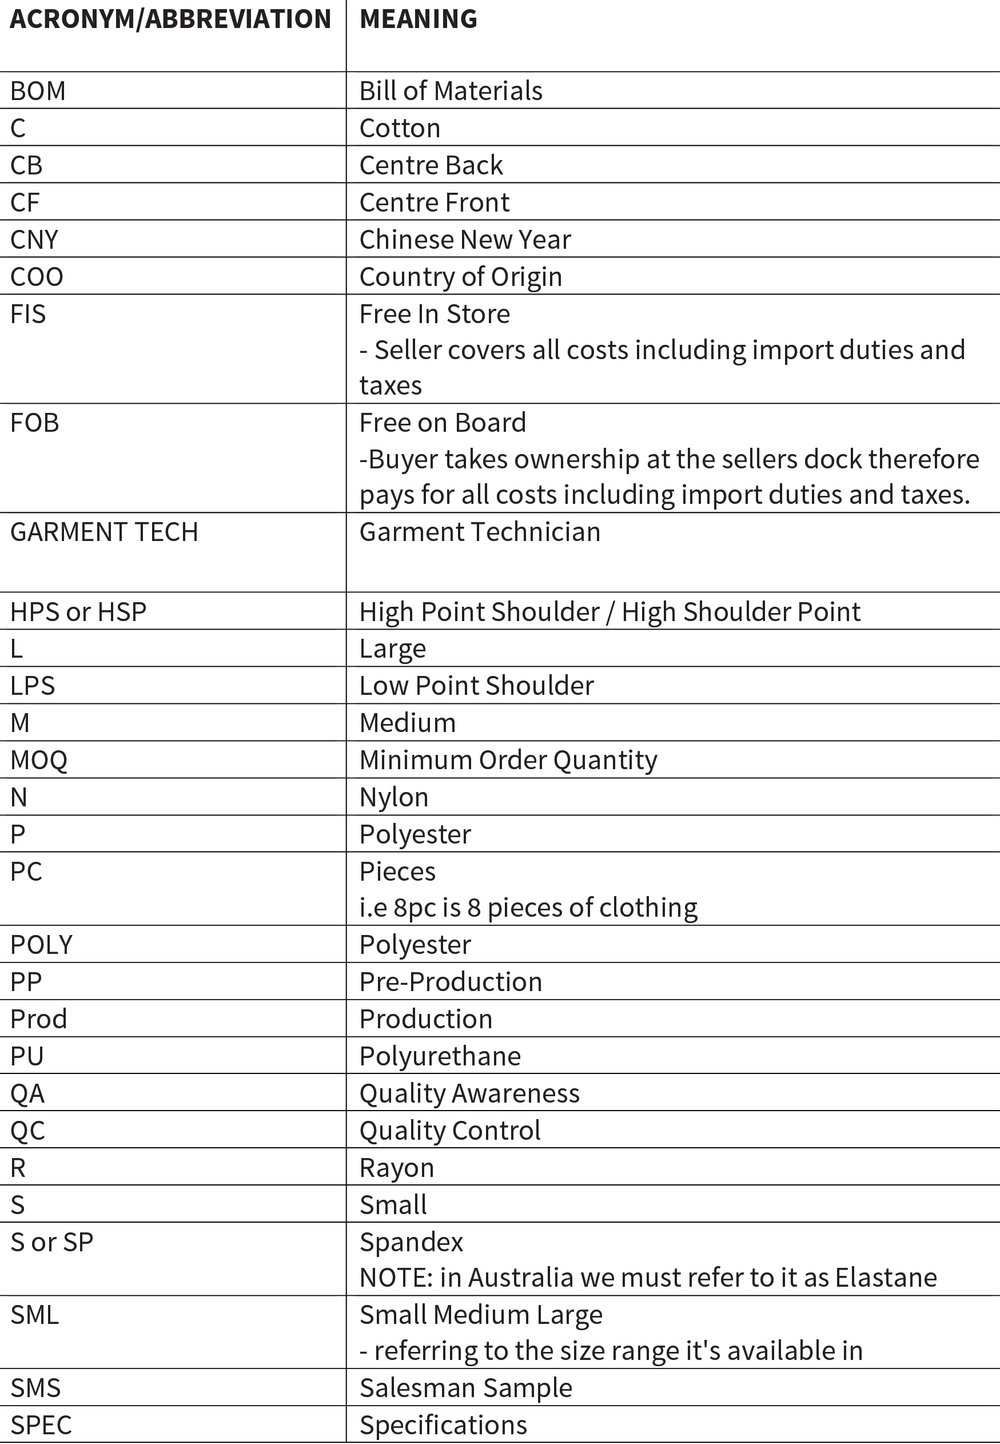 list of acronyms and abbreviations